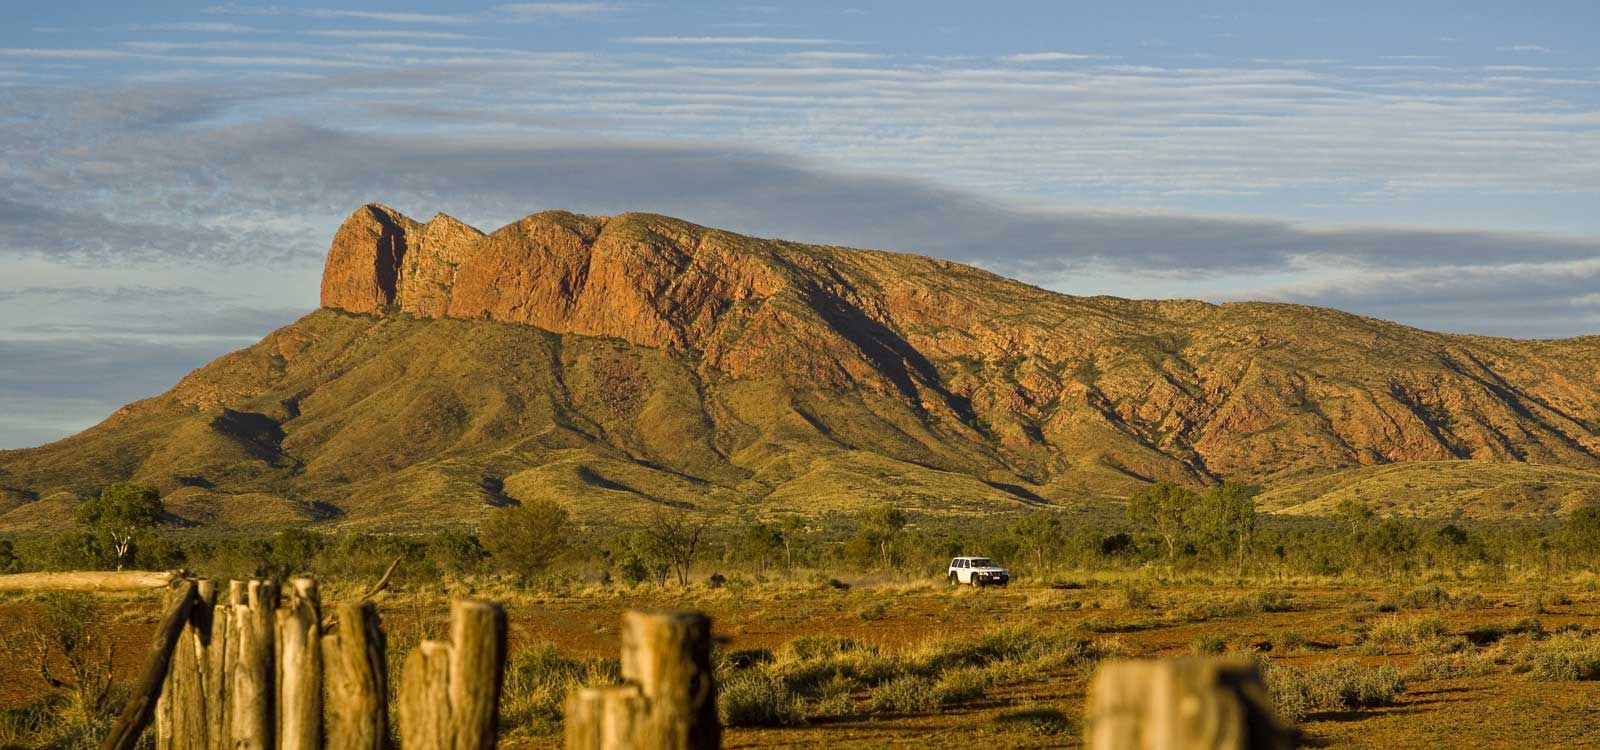 image of AARONTAIT COPYRIGHTED 2014 5212 EDITORIAL DOCUMENTARY PHOTOGRAPHER PAPUNYA NORTHERN TERRITORY AUSTRALIA LANDSCAPE LIFE PEOPLE ART INDIGENOUS PINTUPI LURITJA PAPUNYA TULA MOUNTAINS OUTBACK 4WD REMOTE